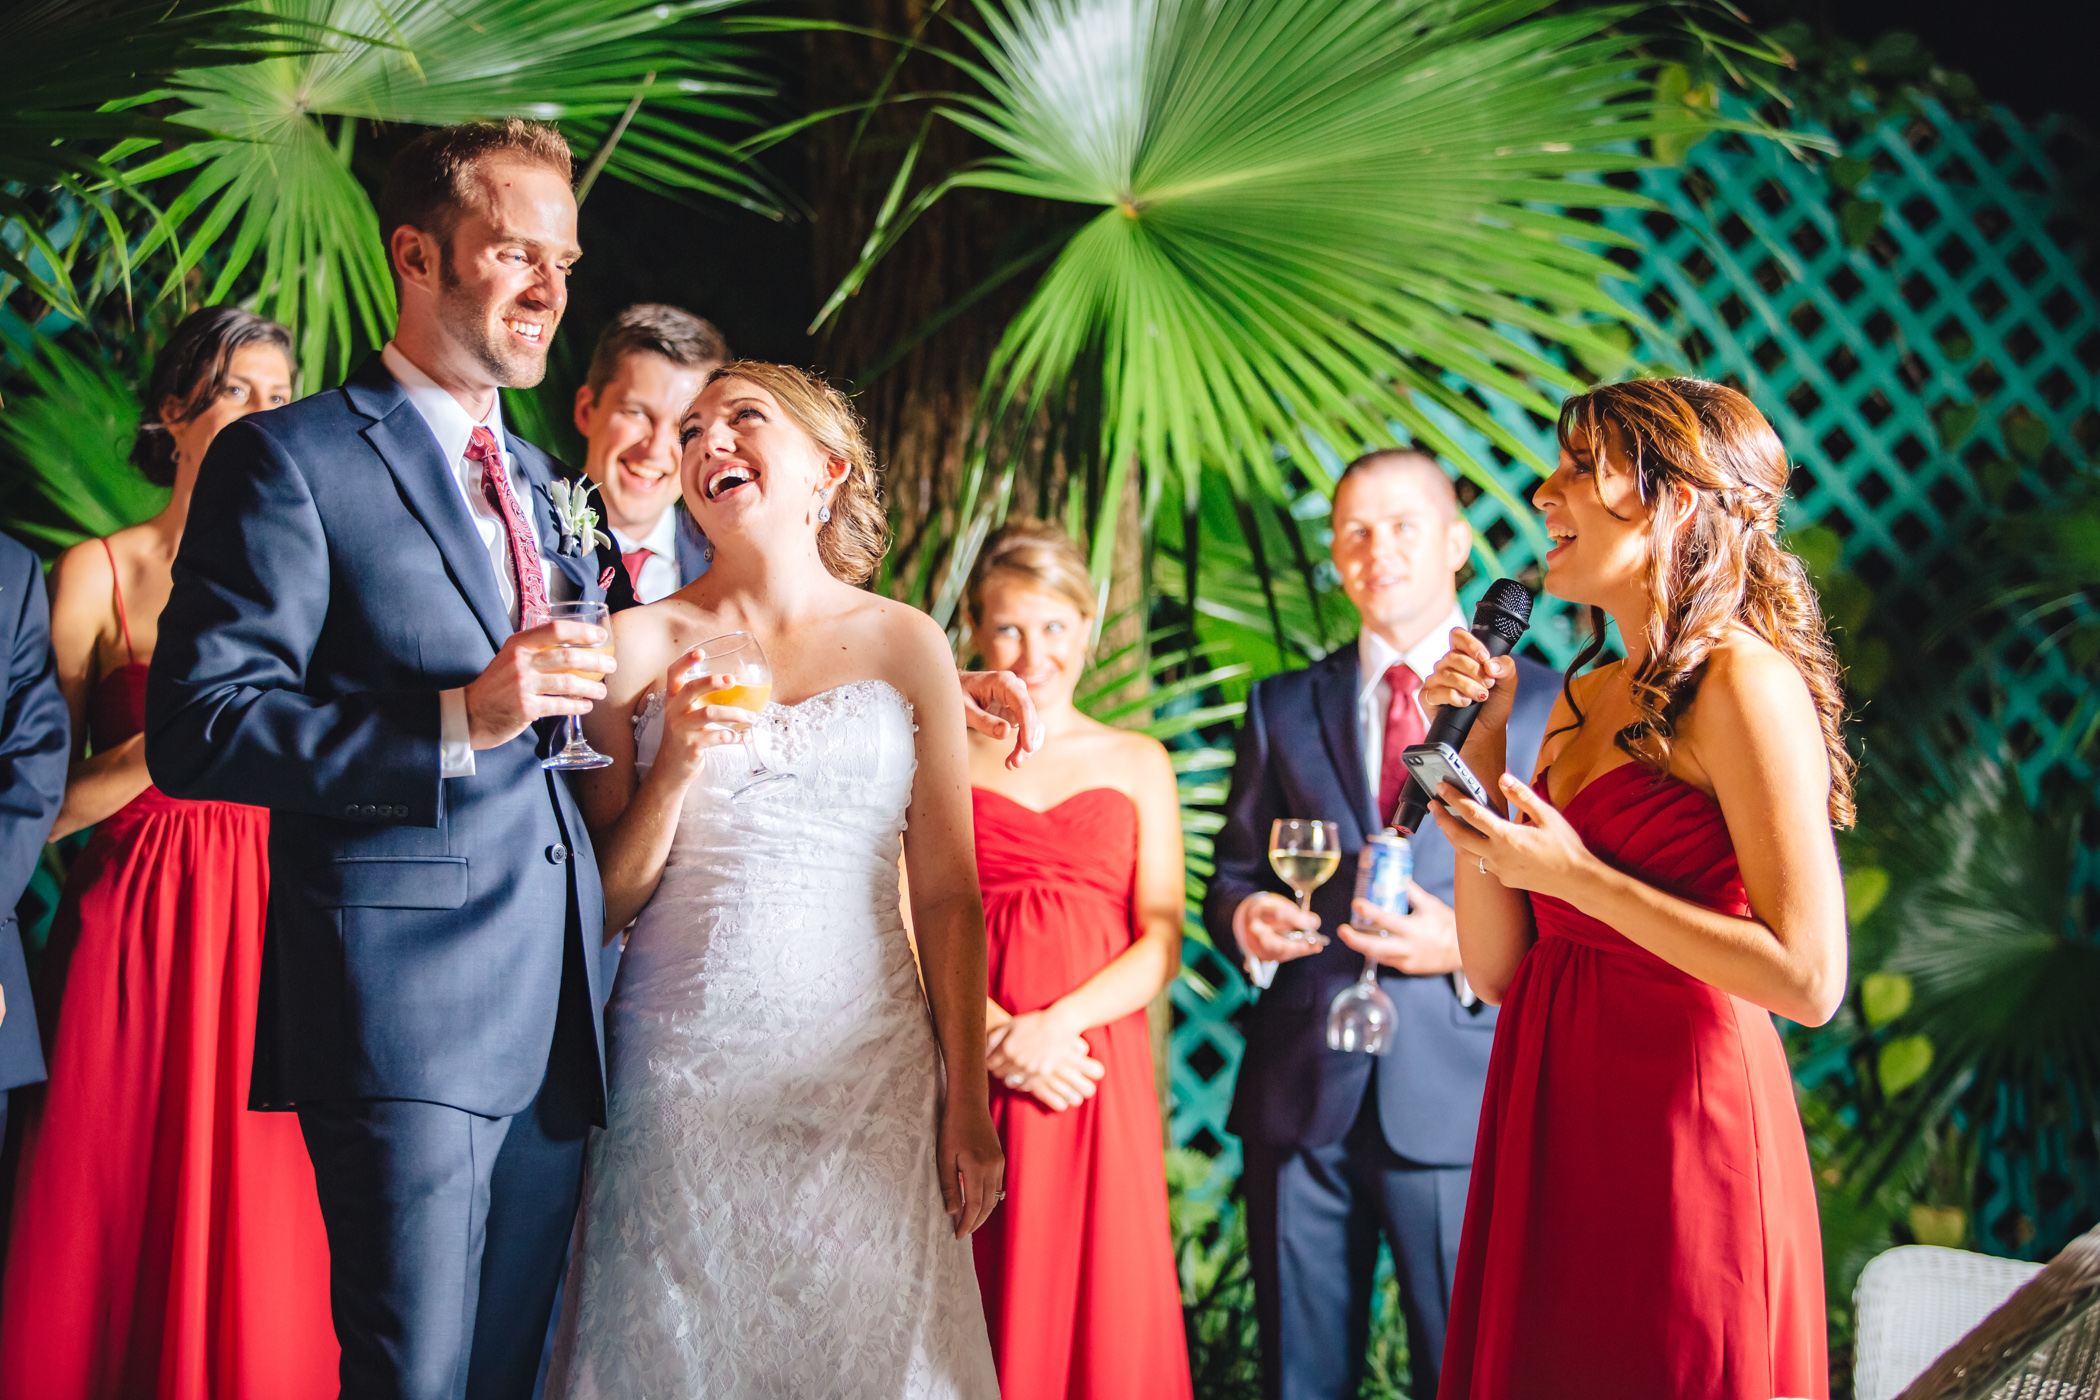 Downtown Orlando Wedding at Lake Lucerne Christmas Theme Red Dress Navy Suits 152.jpg